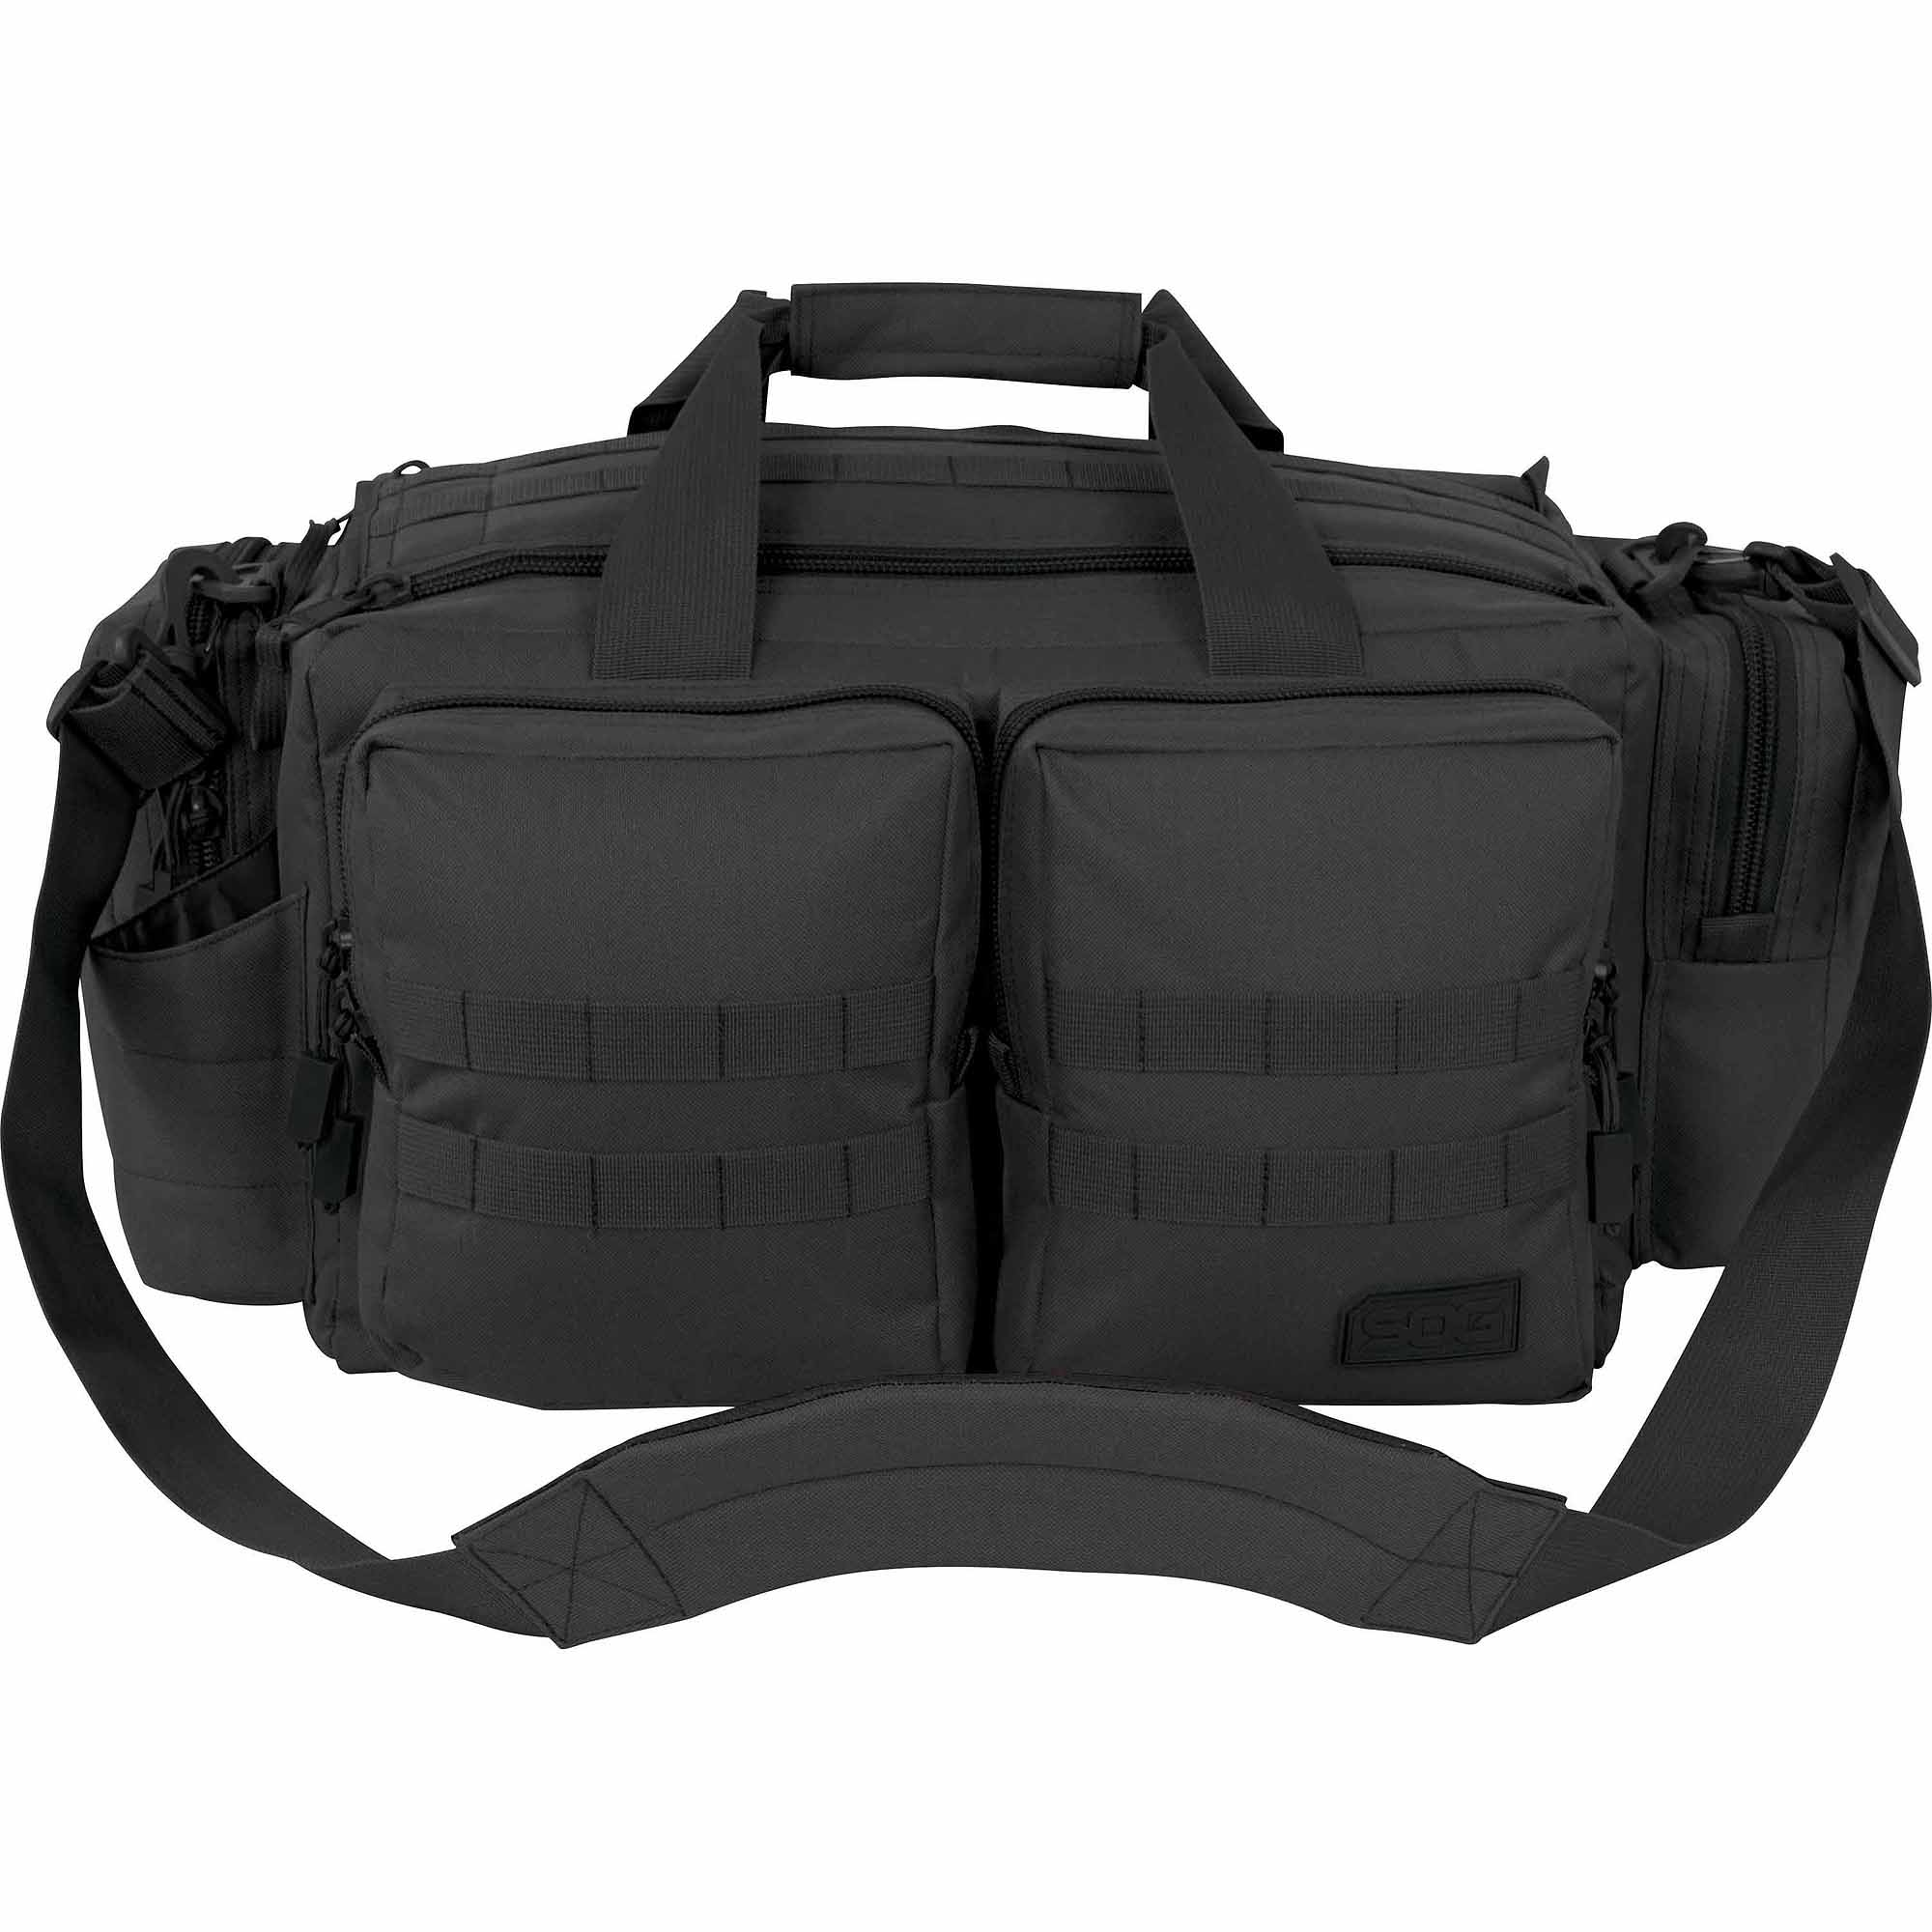 SOG Black 6 Gear Bag